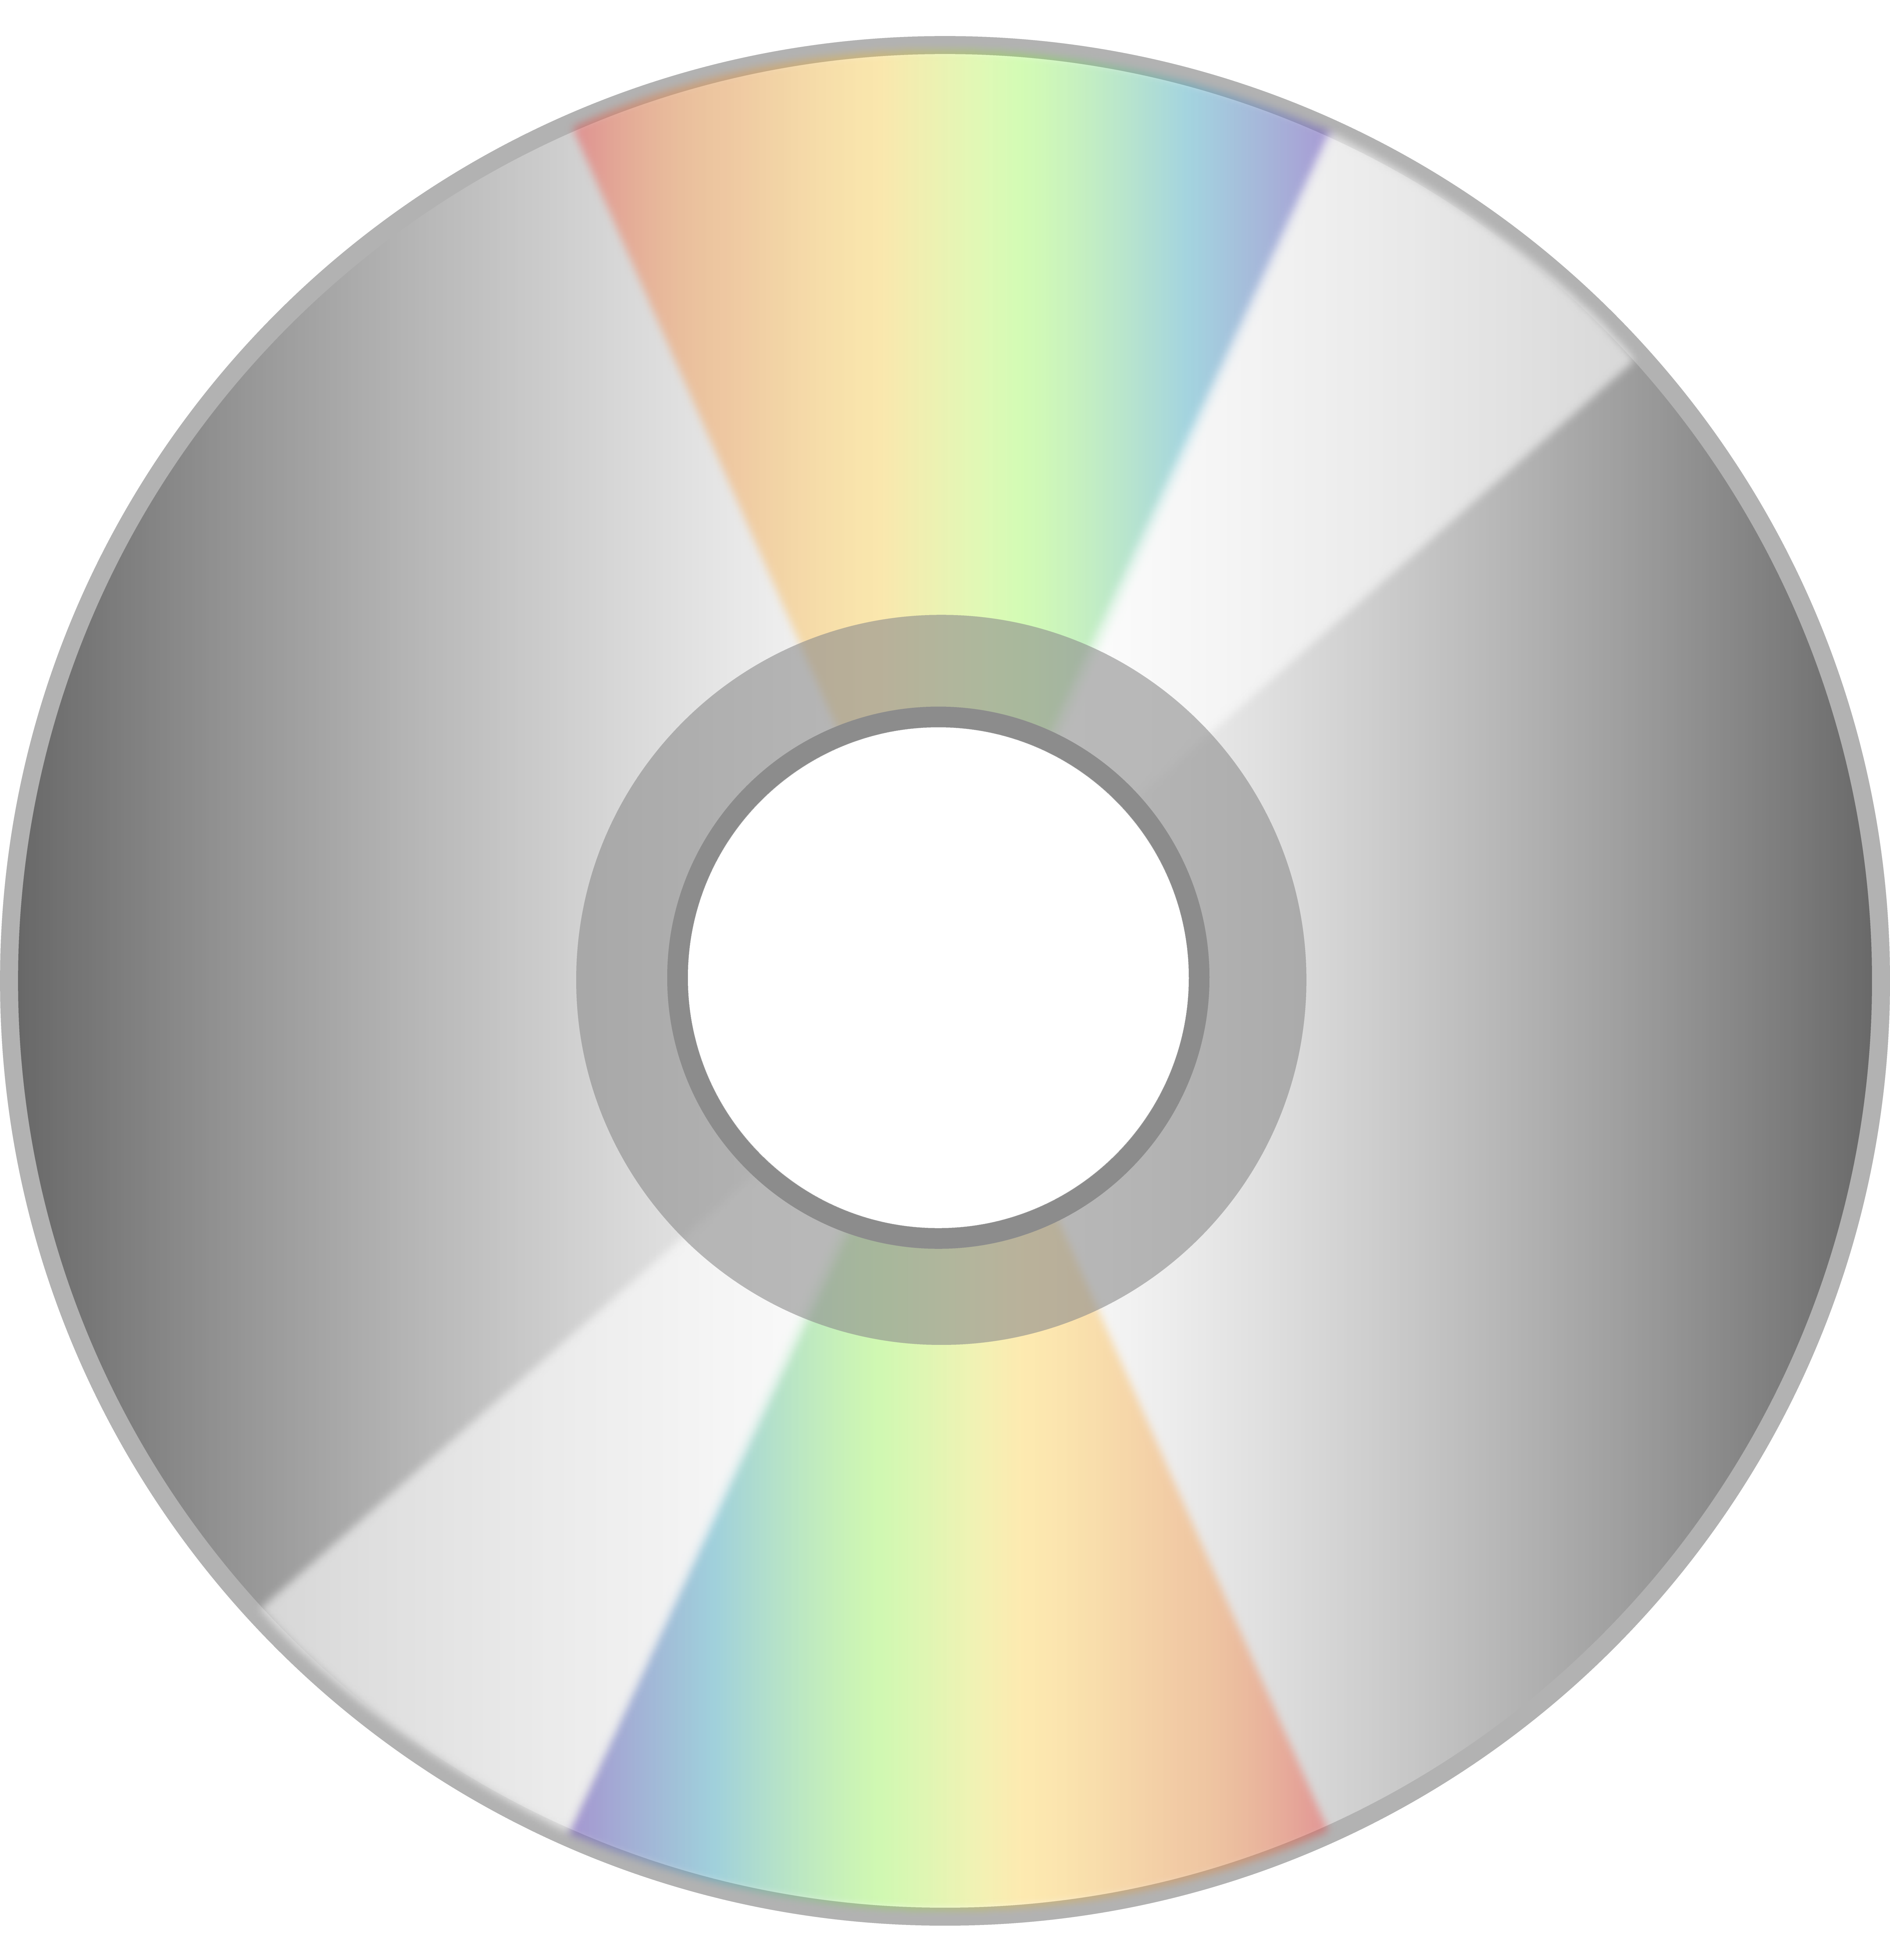 Cd clipart software. Shiny compact disc free